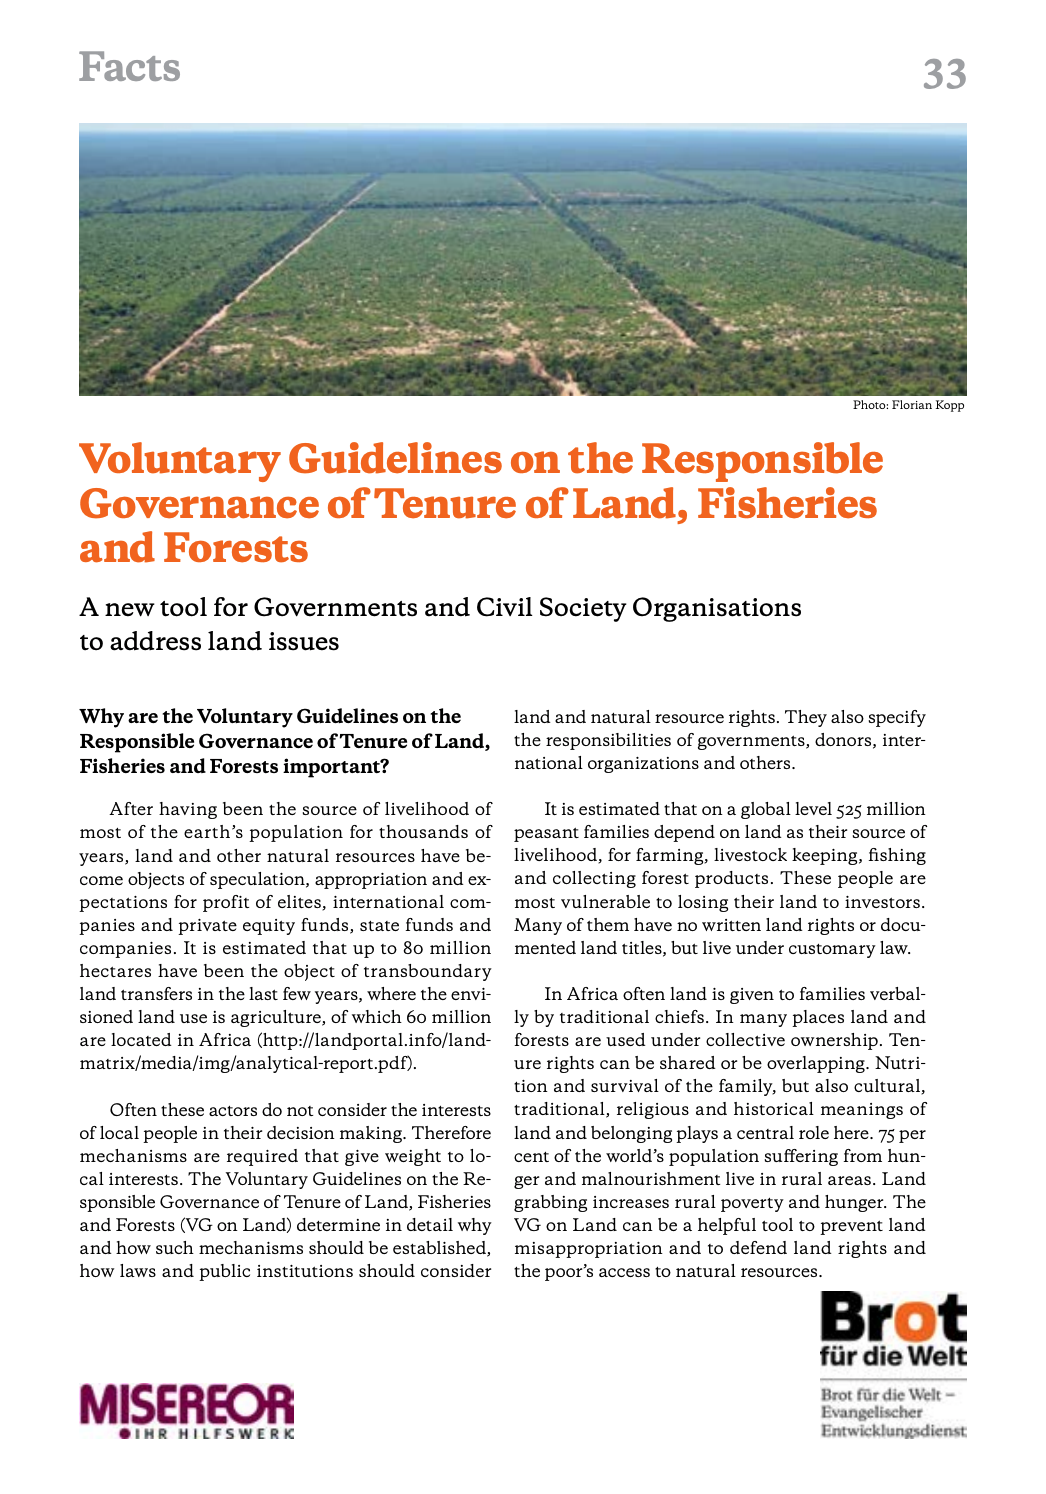 Facts 33: Voluntary Guidelines on the Responsible Governance of Tenure of Land, Fisheries and Forests cover image